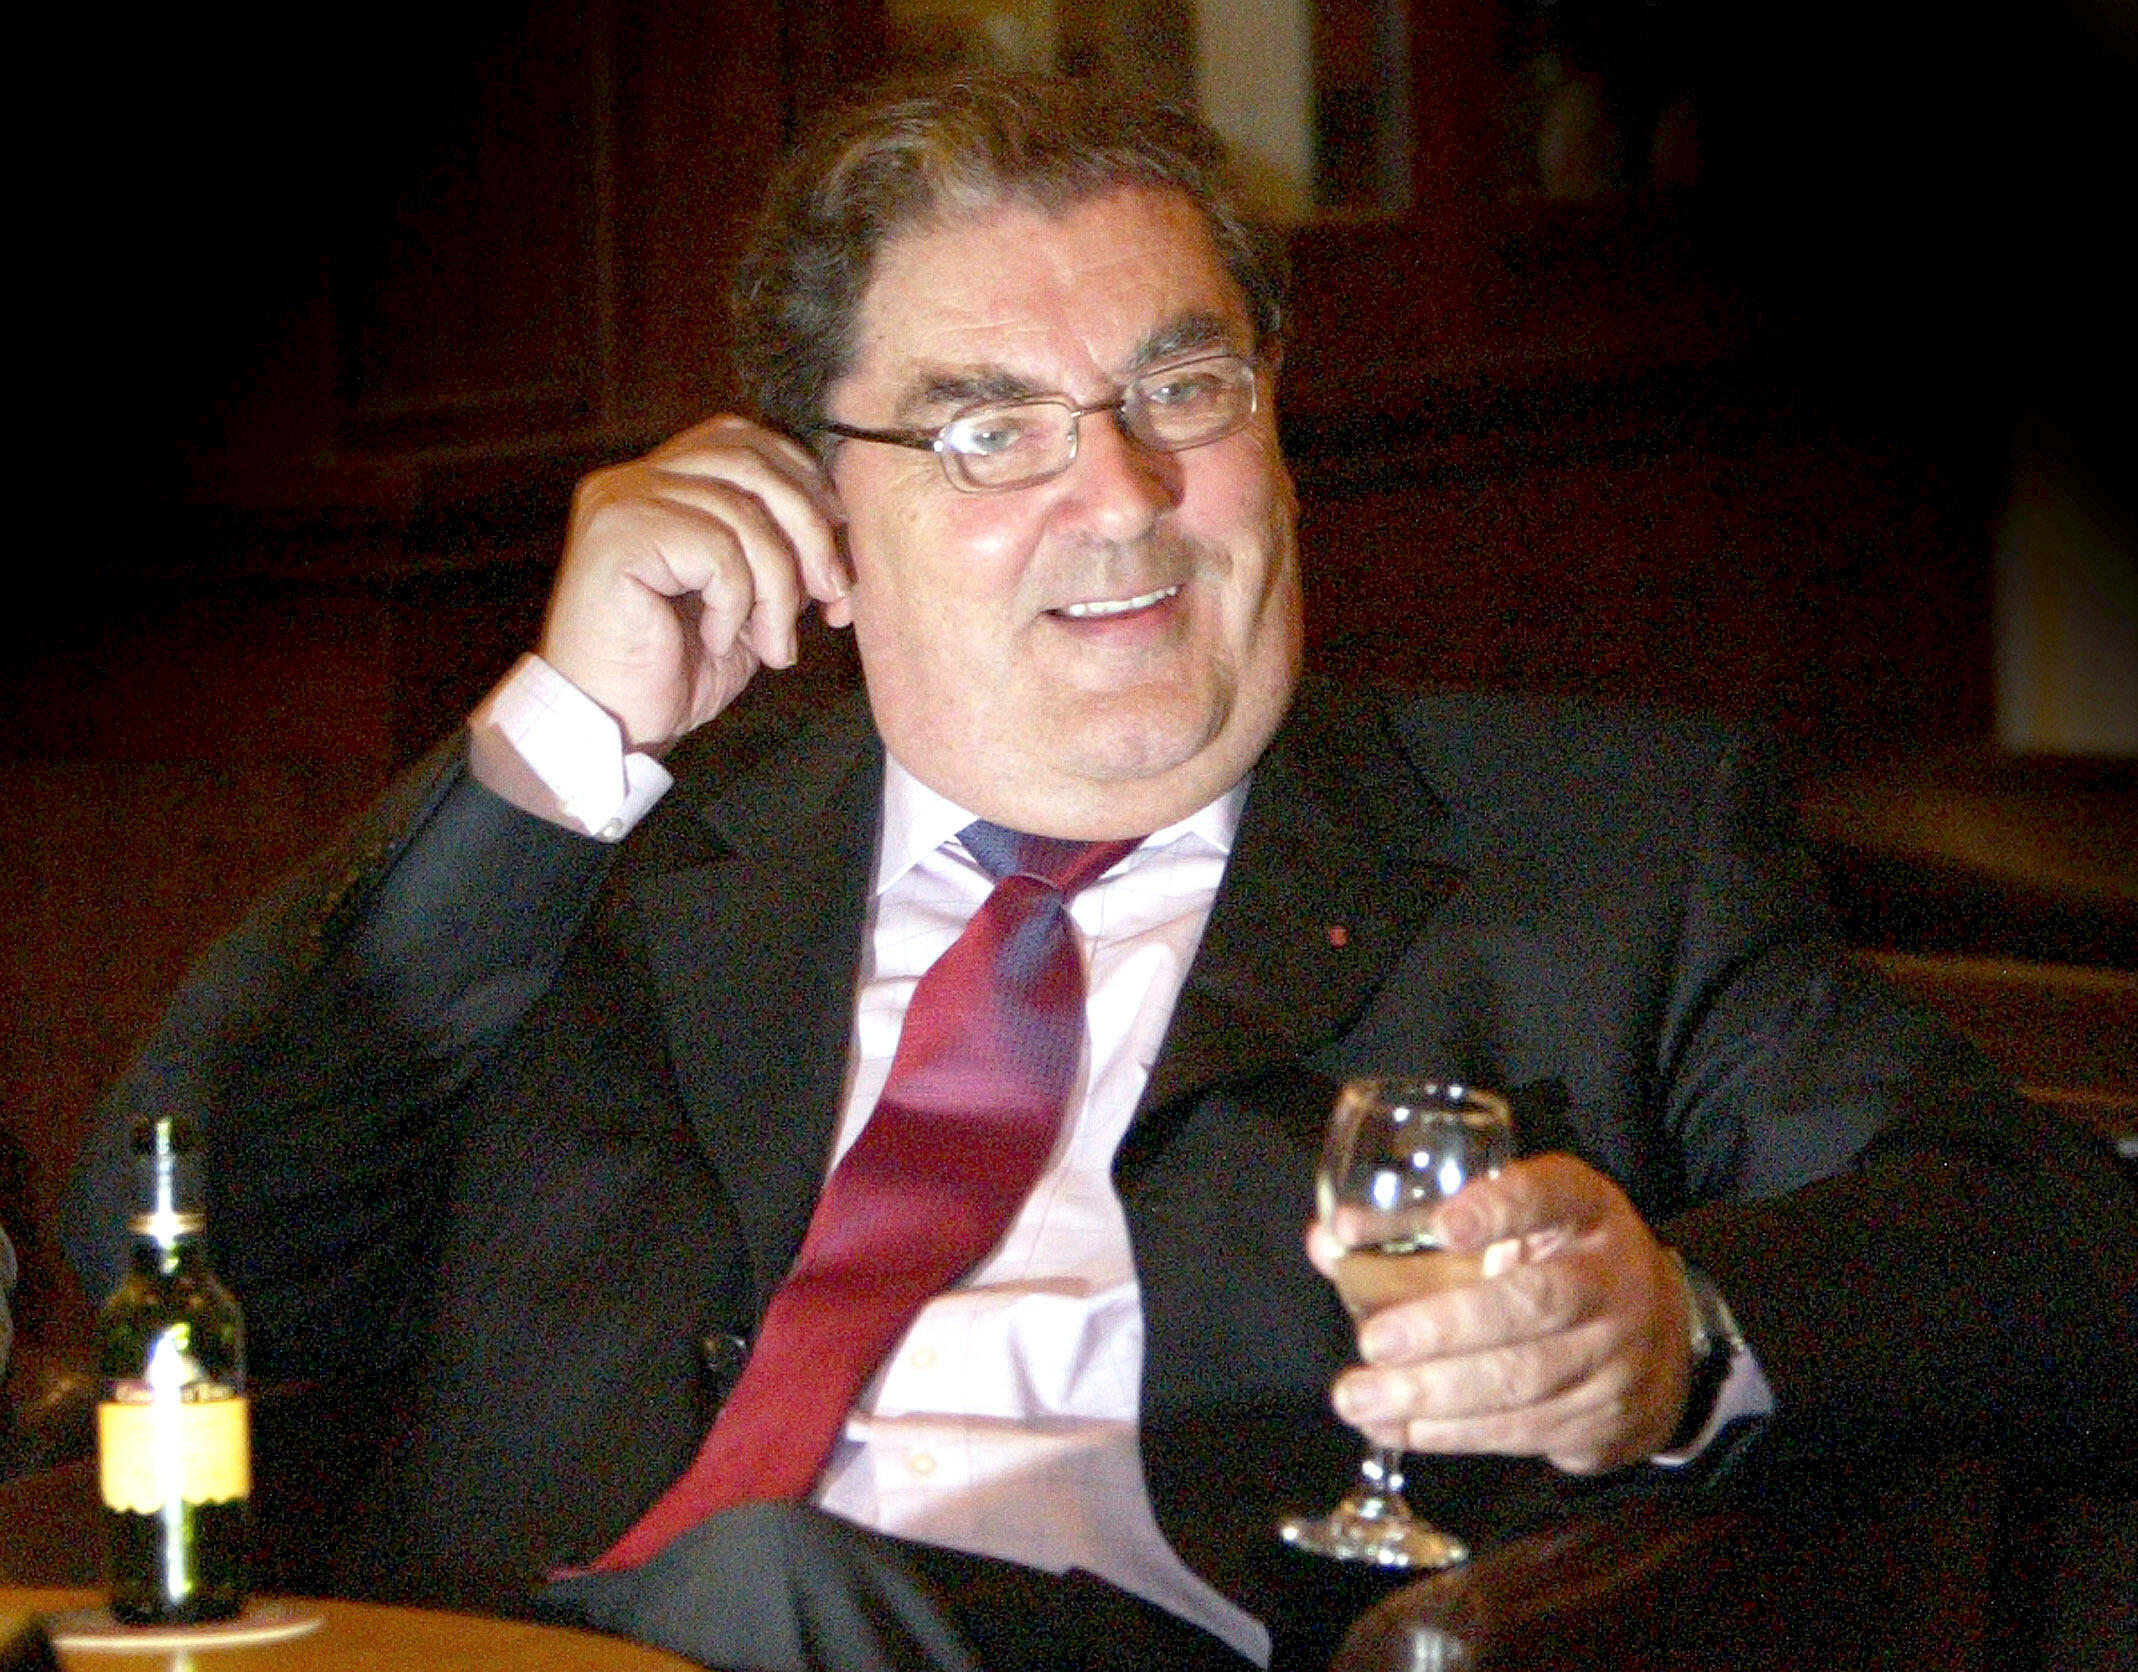 Former Social Democratic and Labour Party (SDLP) leader and MP for Foyle, John Hume, sits with a drink after announcing at a news conference in Belfast, that he will not be standing again for the European Parliament, February 4, 2004.